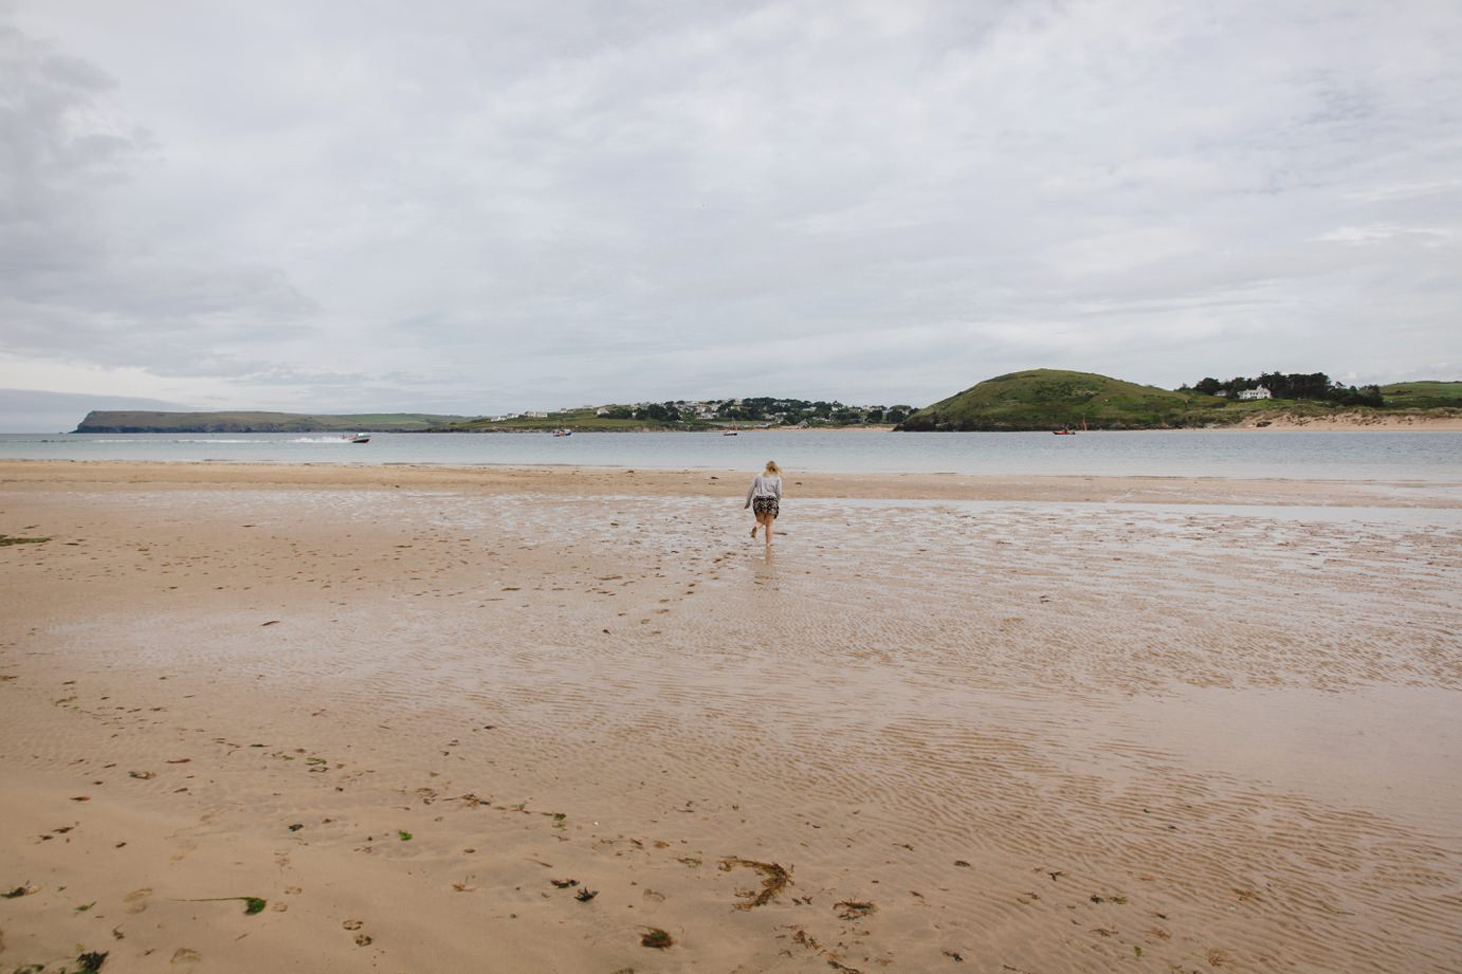 cornwall padstow st ives travel photography saran ann wright 026